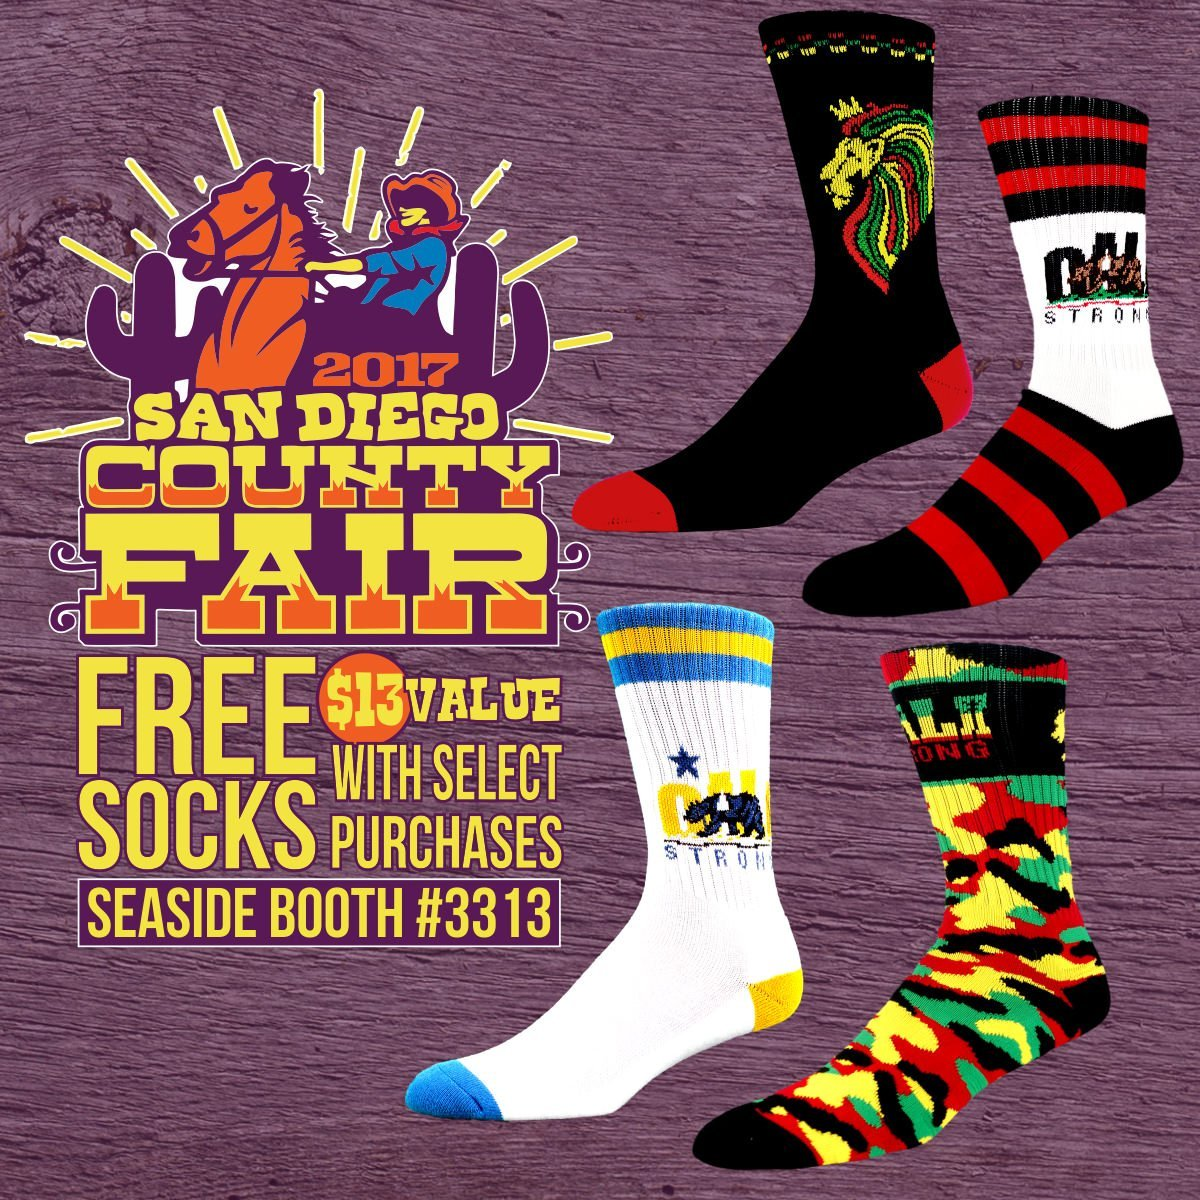 FREE Socks with select purchases at the San Diego County Fair!